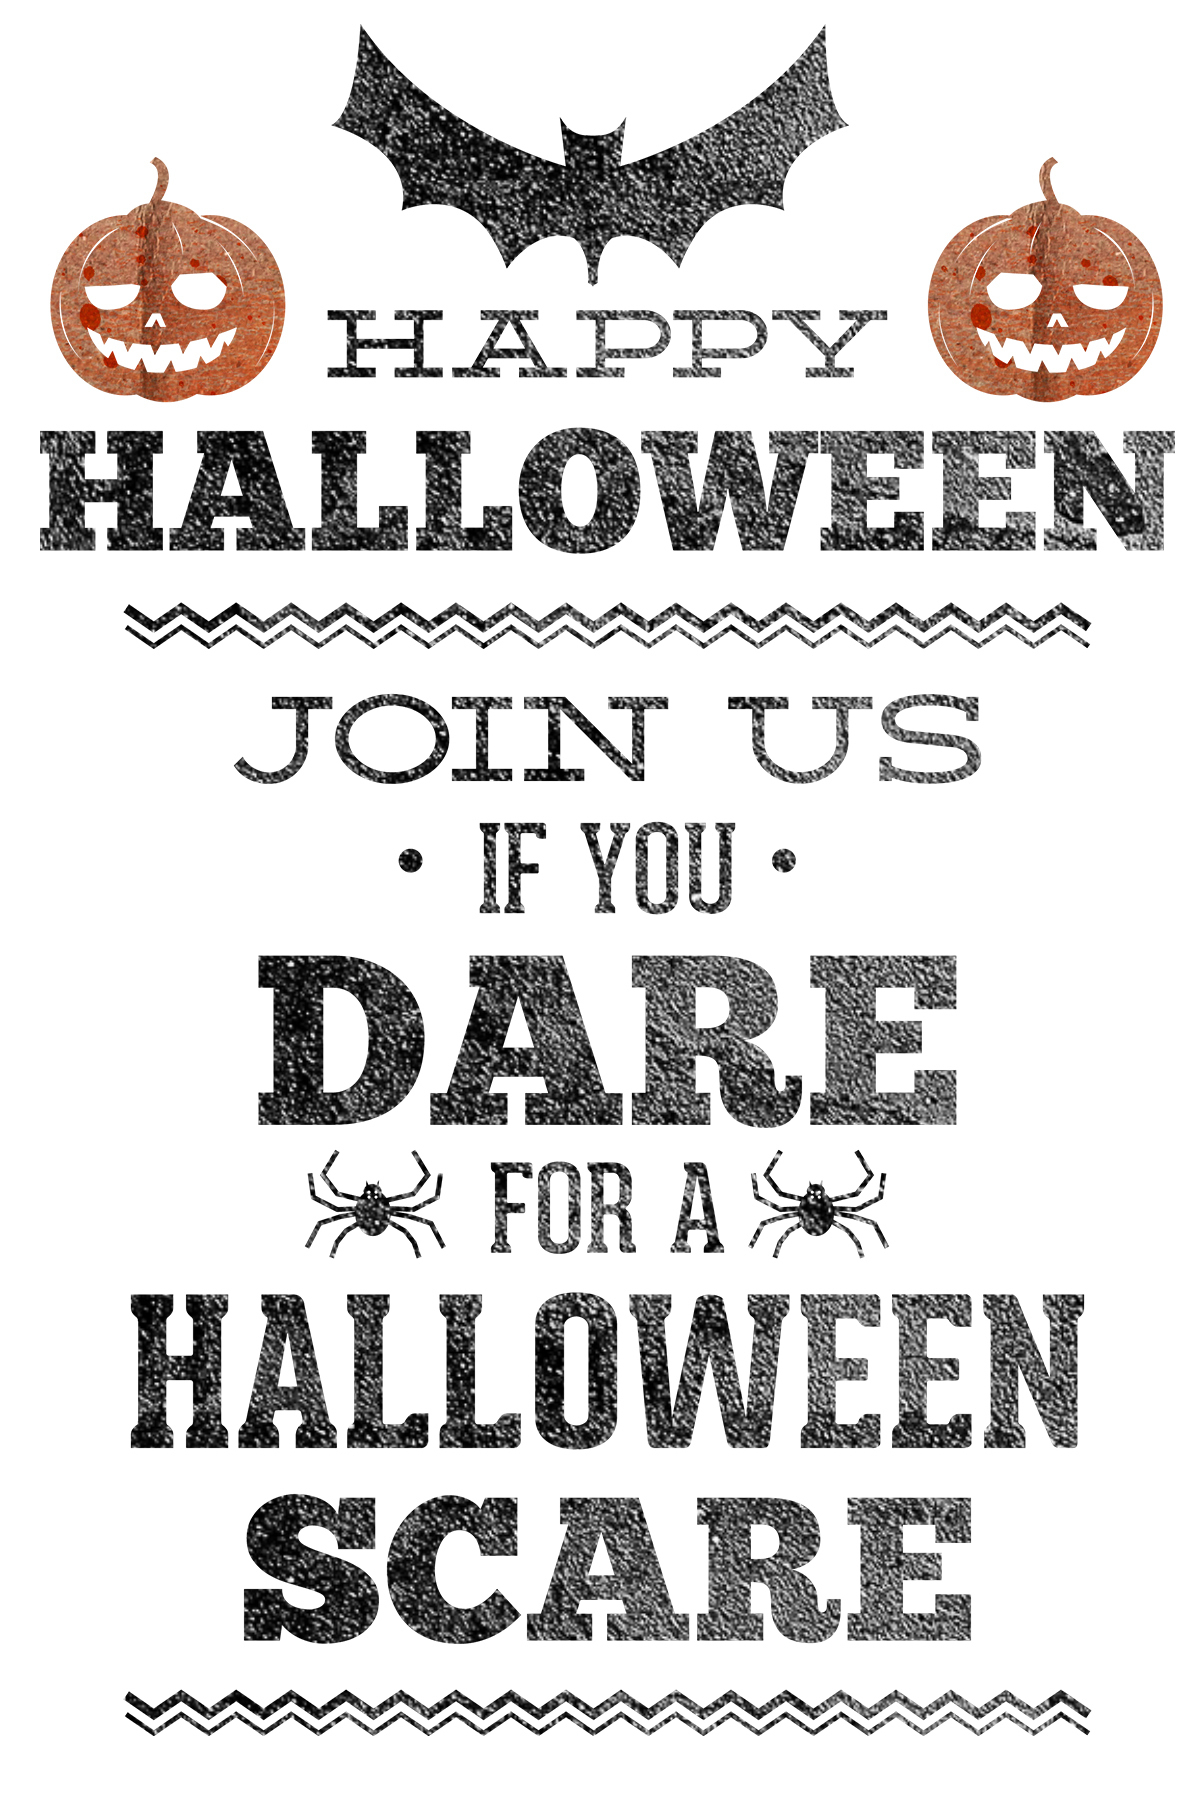 Invitation. Free Halloween Party Invitations - Techcommdood - Halloween Invitations Free Printable Black And White